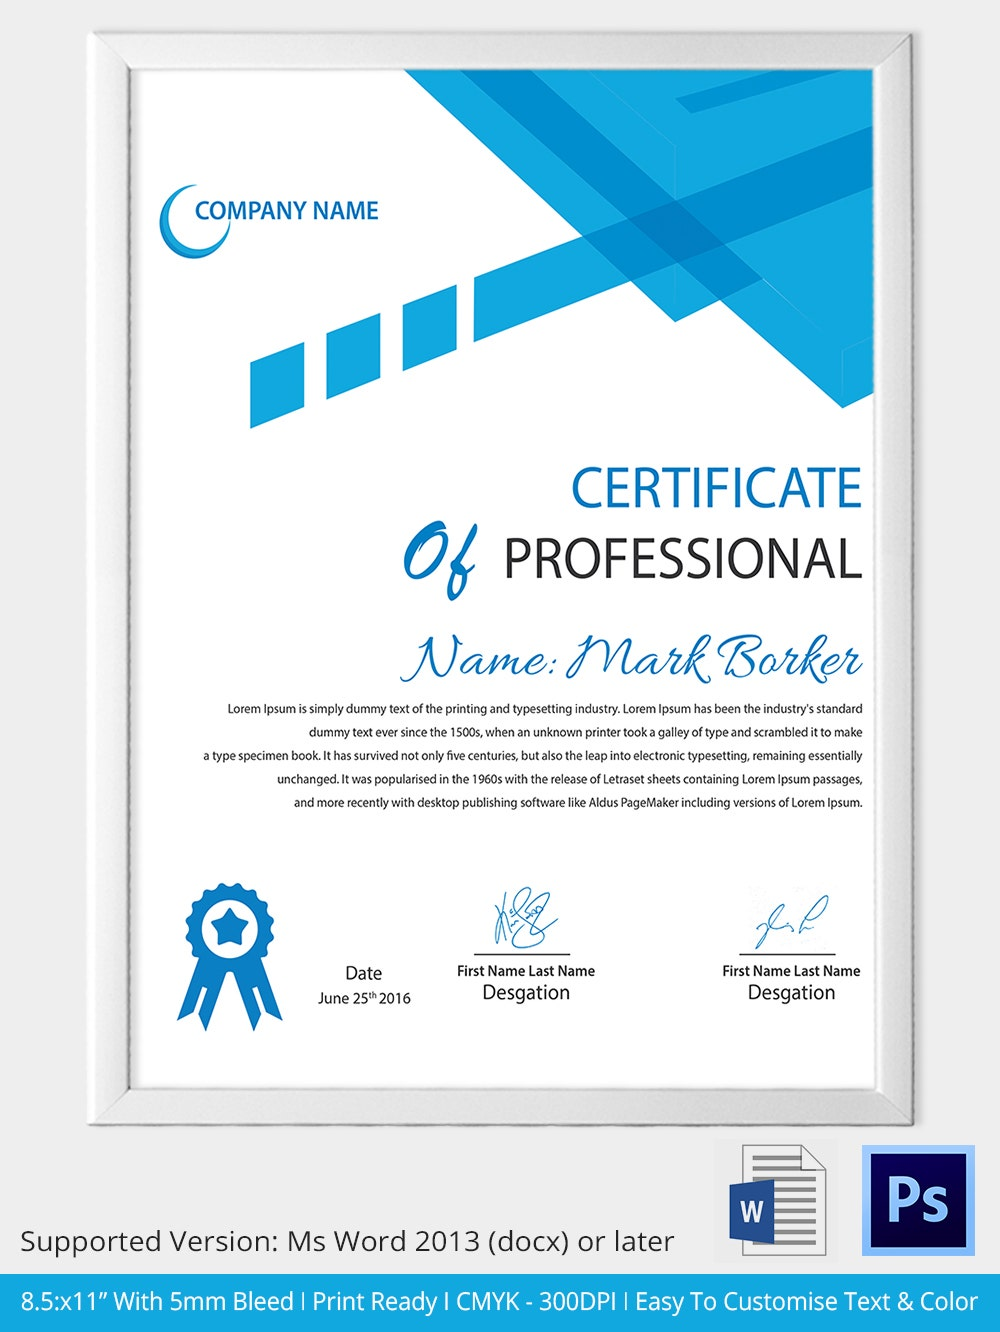 Professional award certificate template image collections sample award certificate templates tolgjcmanagement sample award certificate templates alramifo image collections yadclub Choice Image